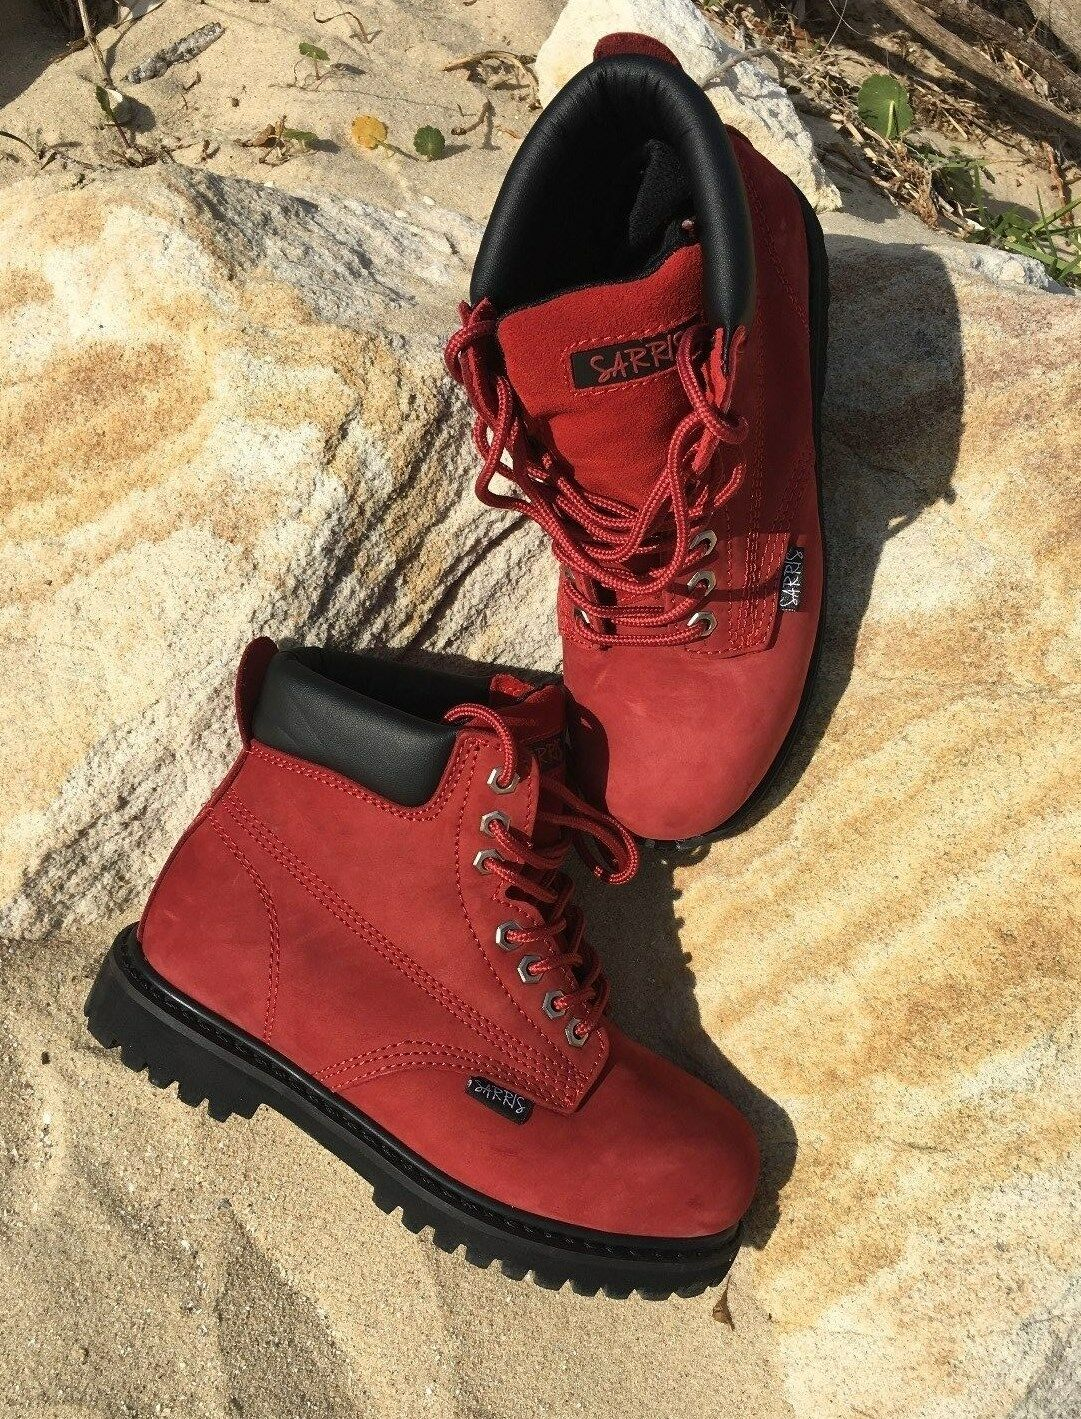 Womens Safety Work Boots - Steel Toe Cap